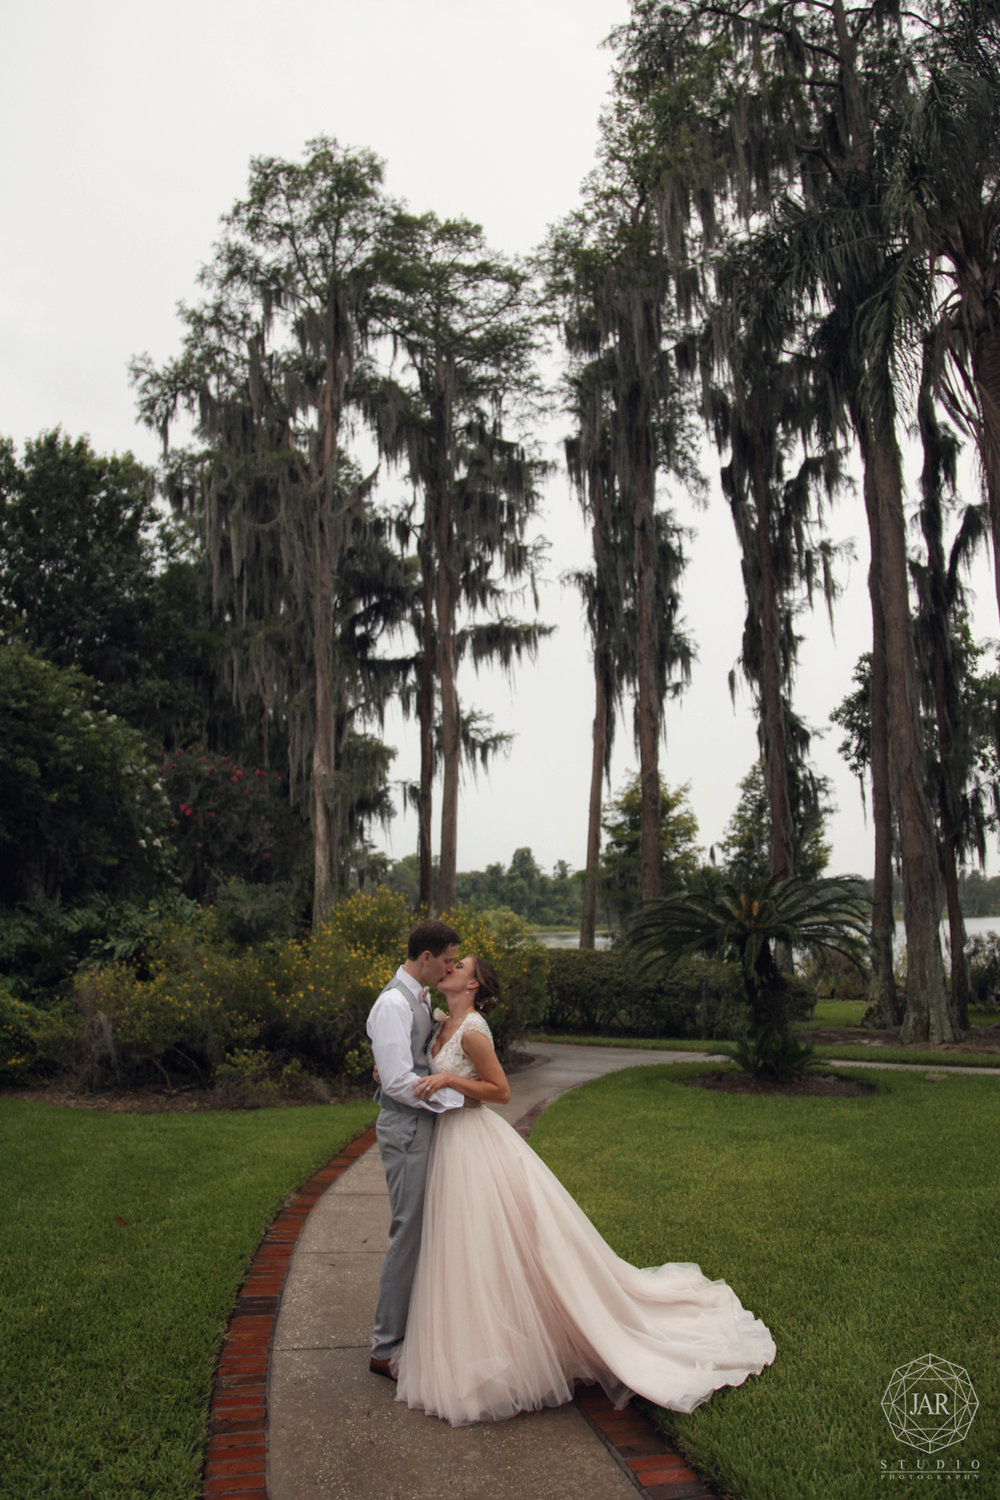 30-romantic-wedding-at-orlando's-cypress-grove-jarstudio-photography.JPG